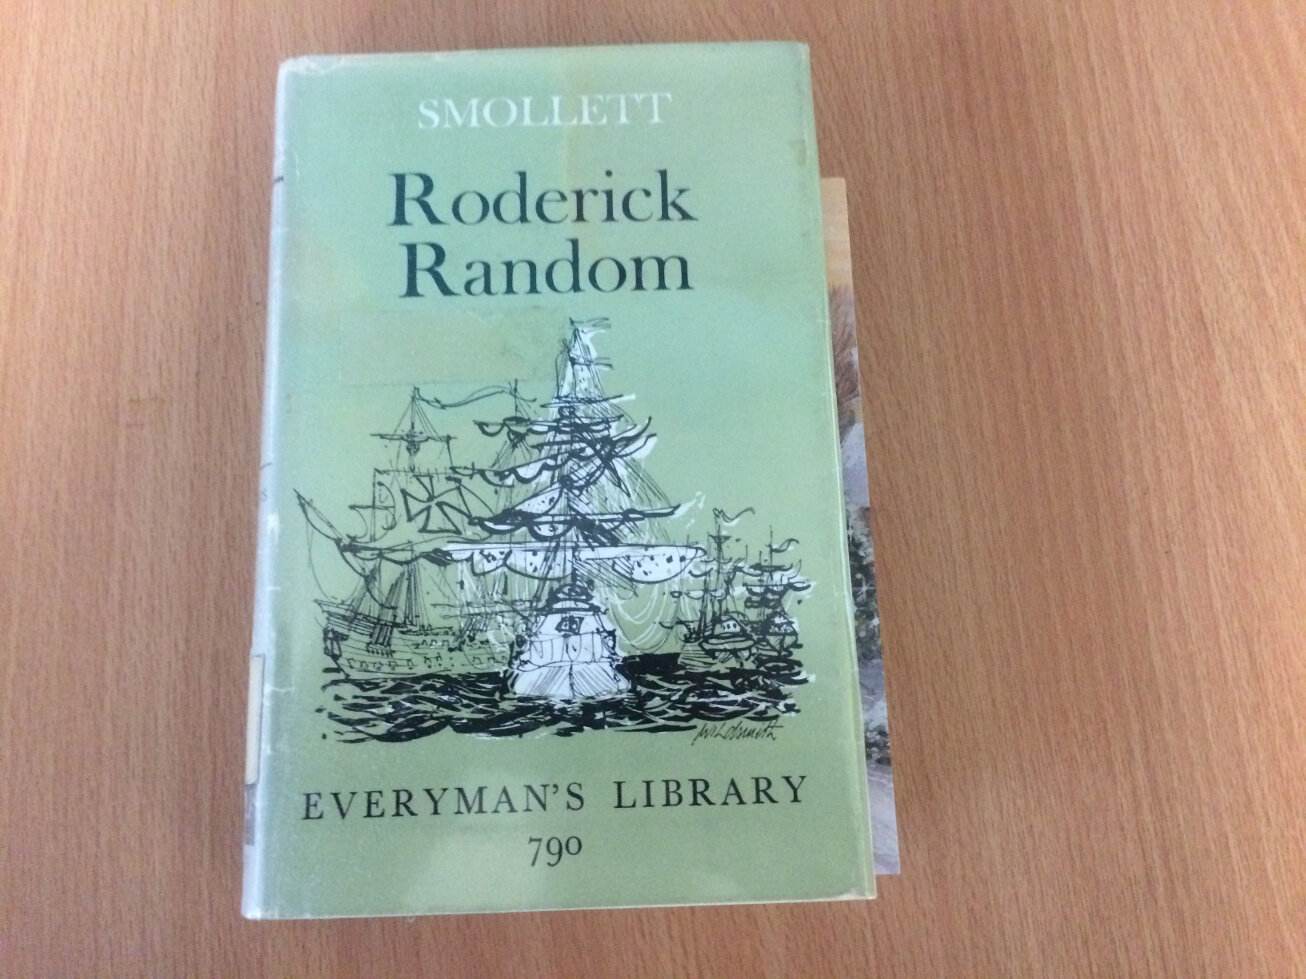 Everyman's Library by Roderick Random Book Cover